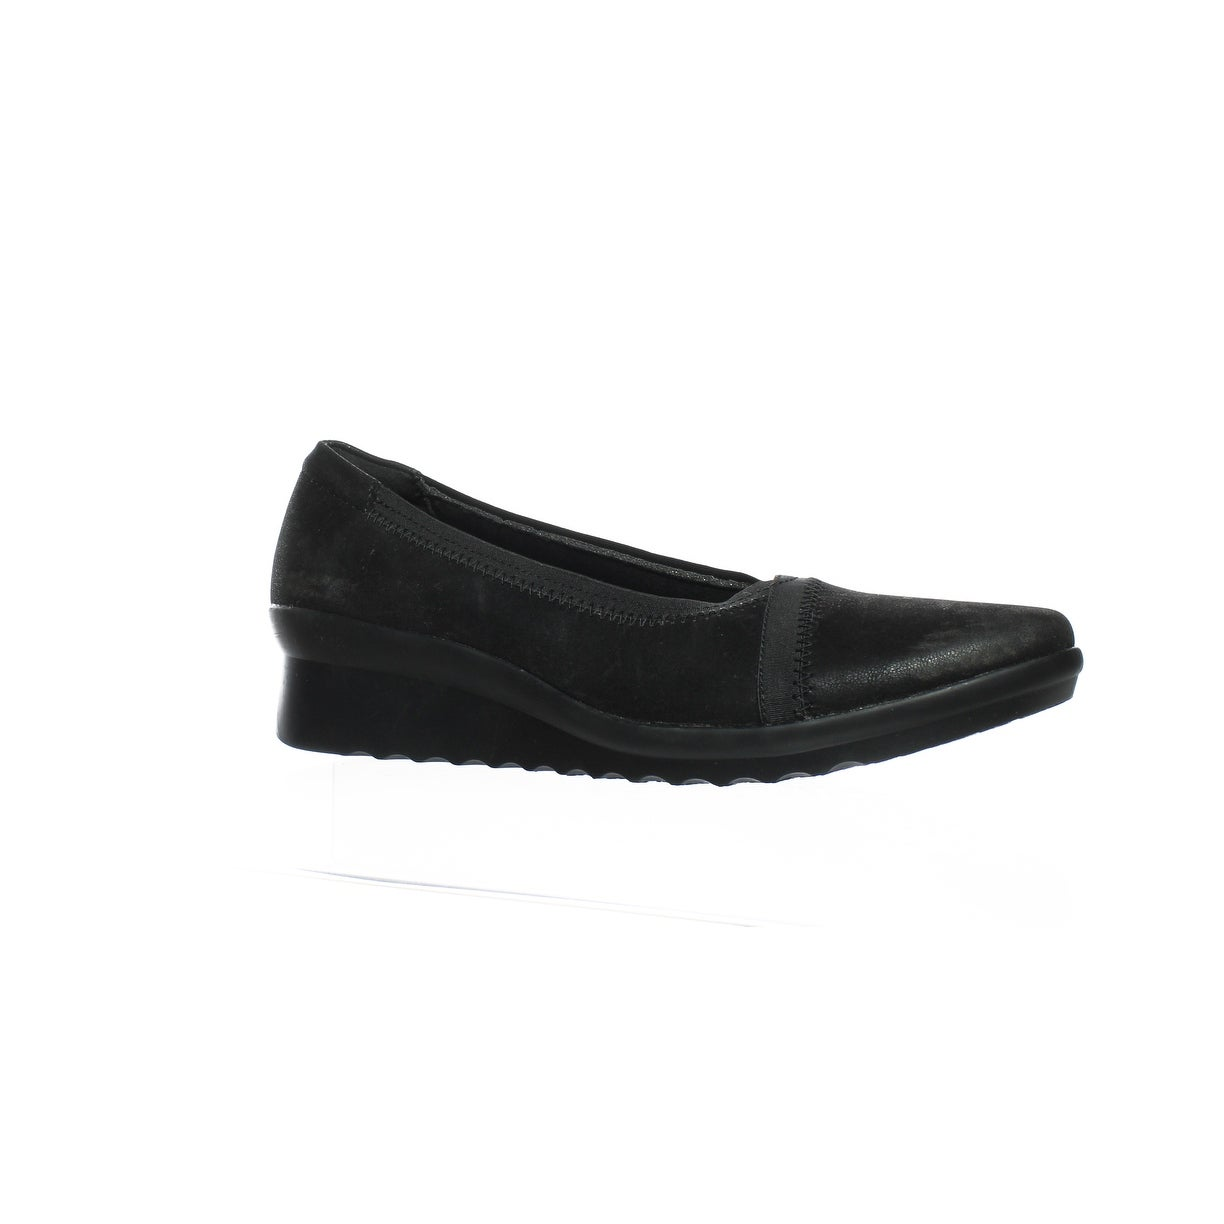 c53049858a5 Shop Cloudsteppers By Clarks Womens Caddel Dash Black Synthetic Heels Size  9 - Free Shipping On Orders Over  45 - Overstock.com - 24202967